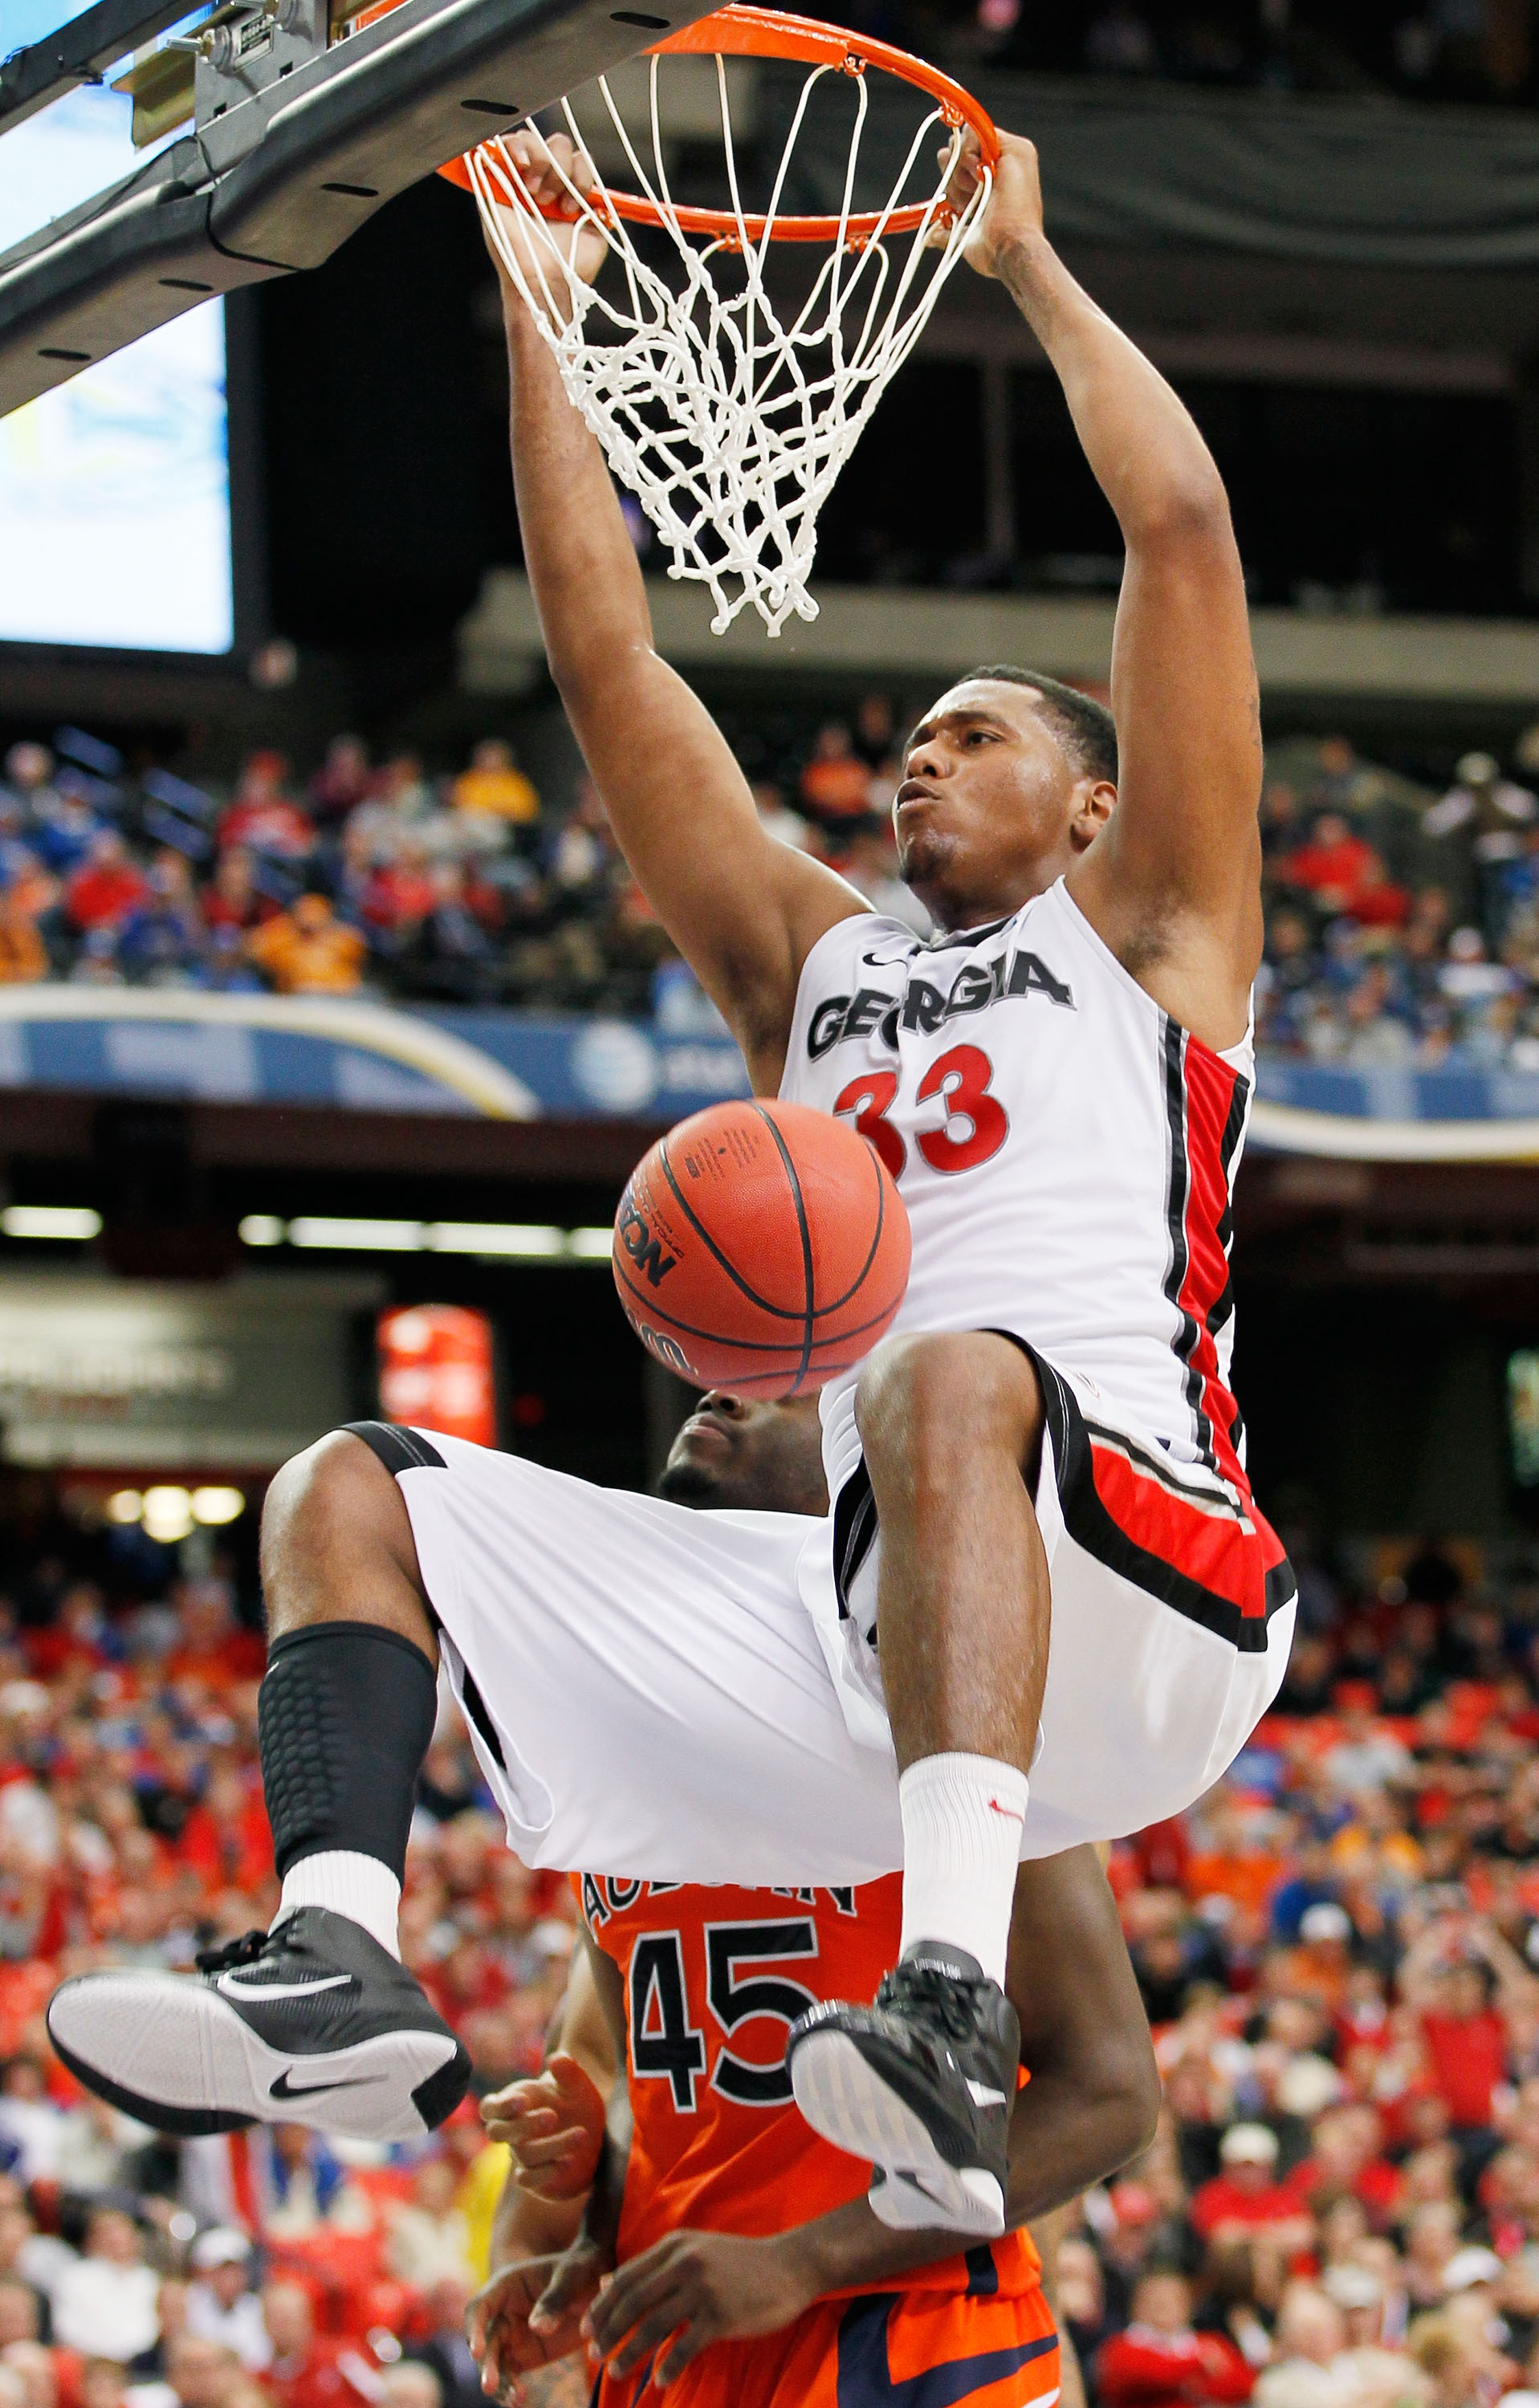 ATLANTA, GA - MARCH 10:  Trey Thompkins #33 of the Georgia Bulldogs dunks against the Auburn Tigers during the first round of the SEC Men's Basketball Tournament at the Georgia Dome on March 10, 2011 in Atlanta, Georgia.  (Photo by Kevin C. Cox/Getty Imag